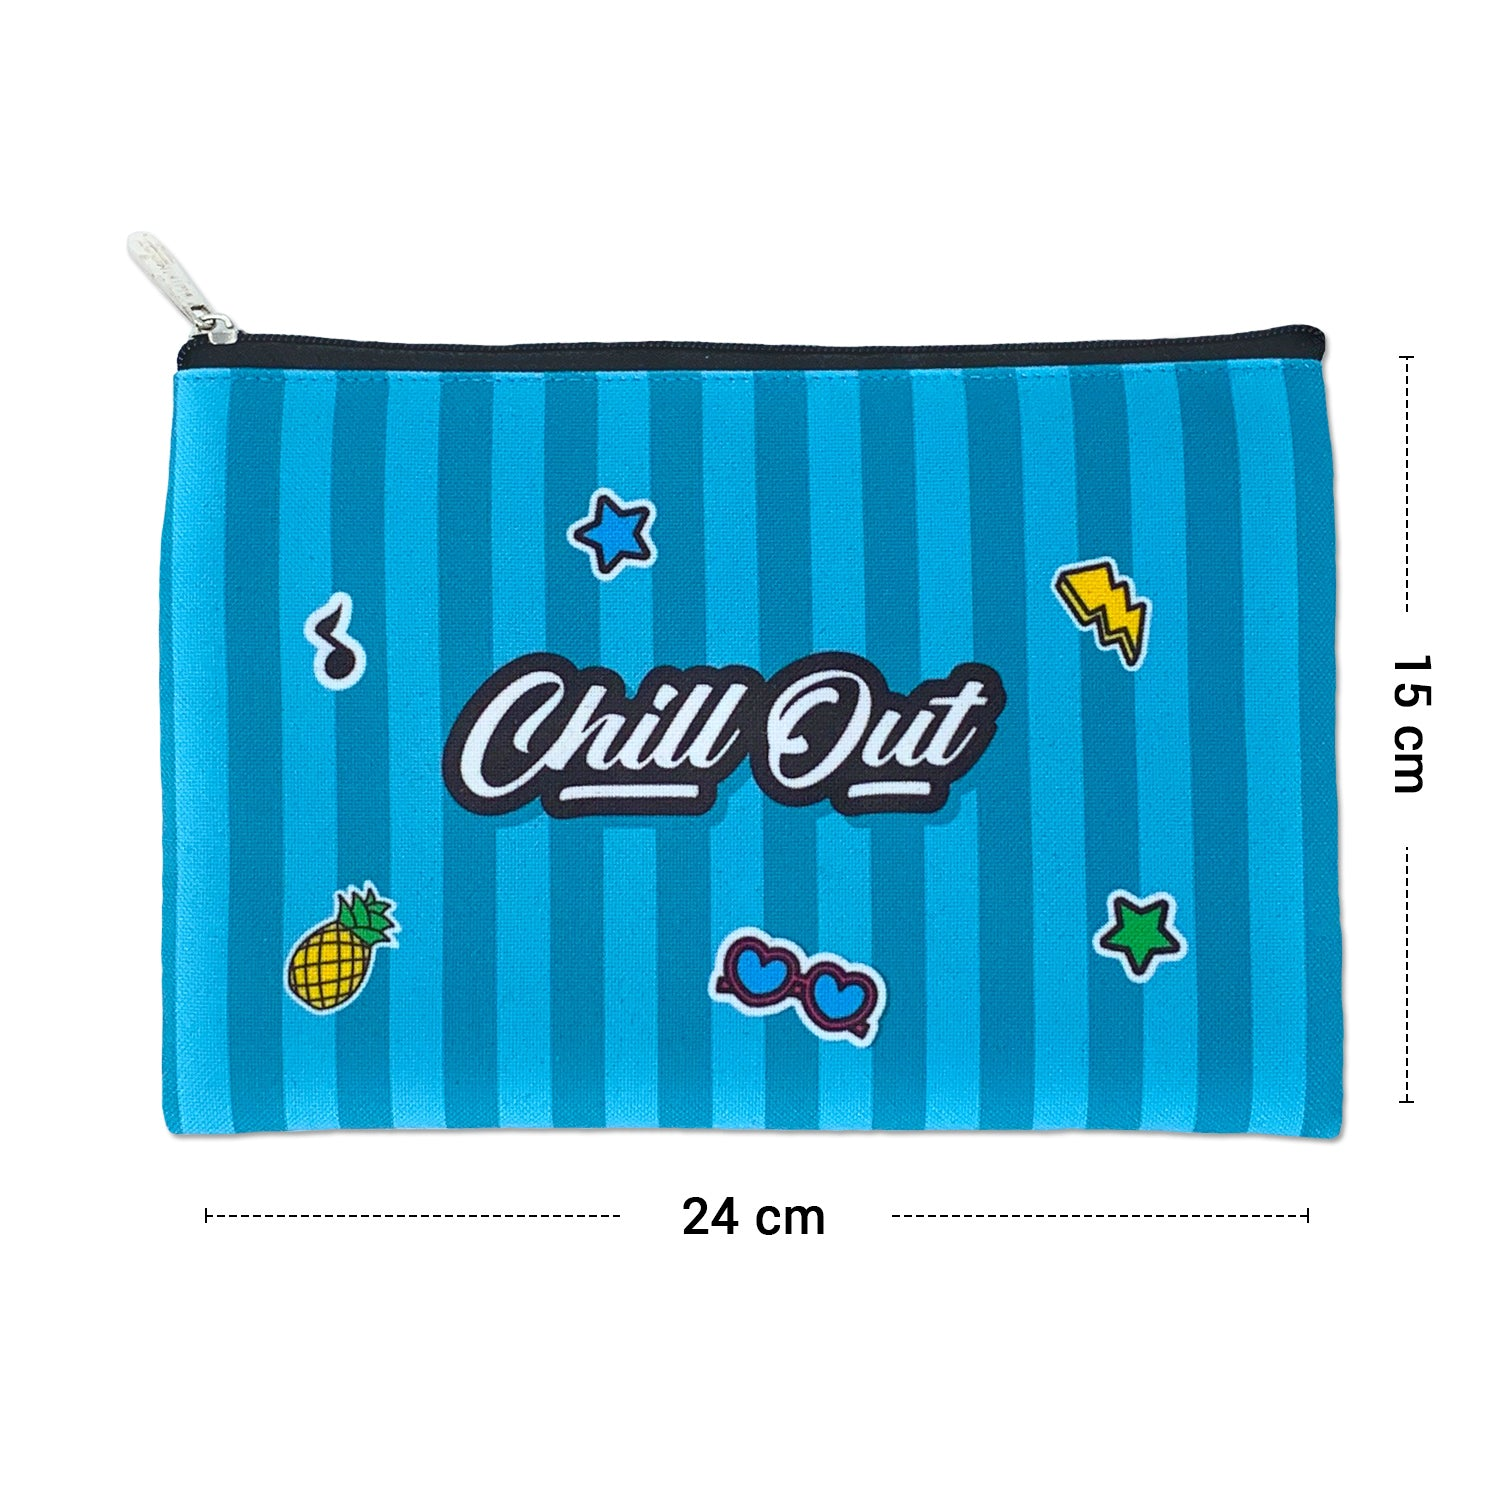 Chill Out Canvas Large Pouch